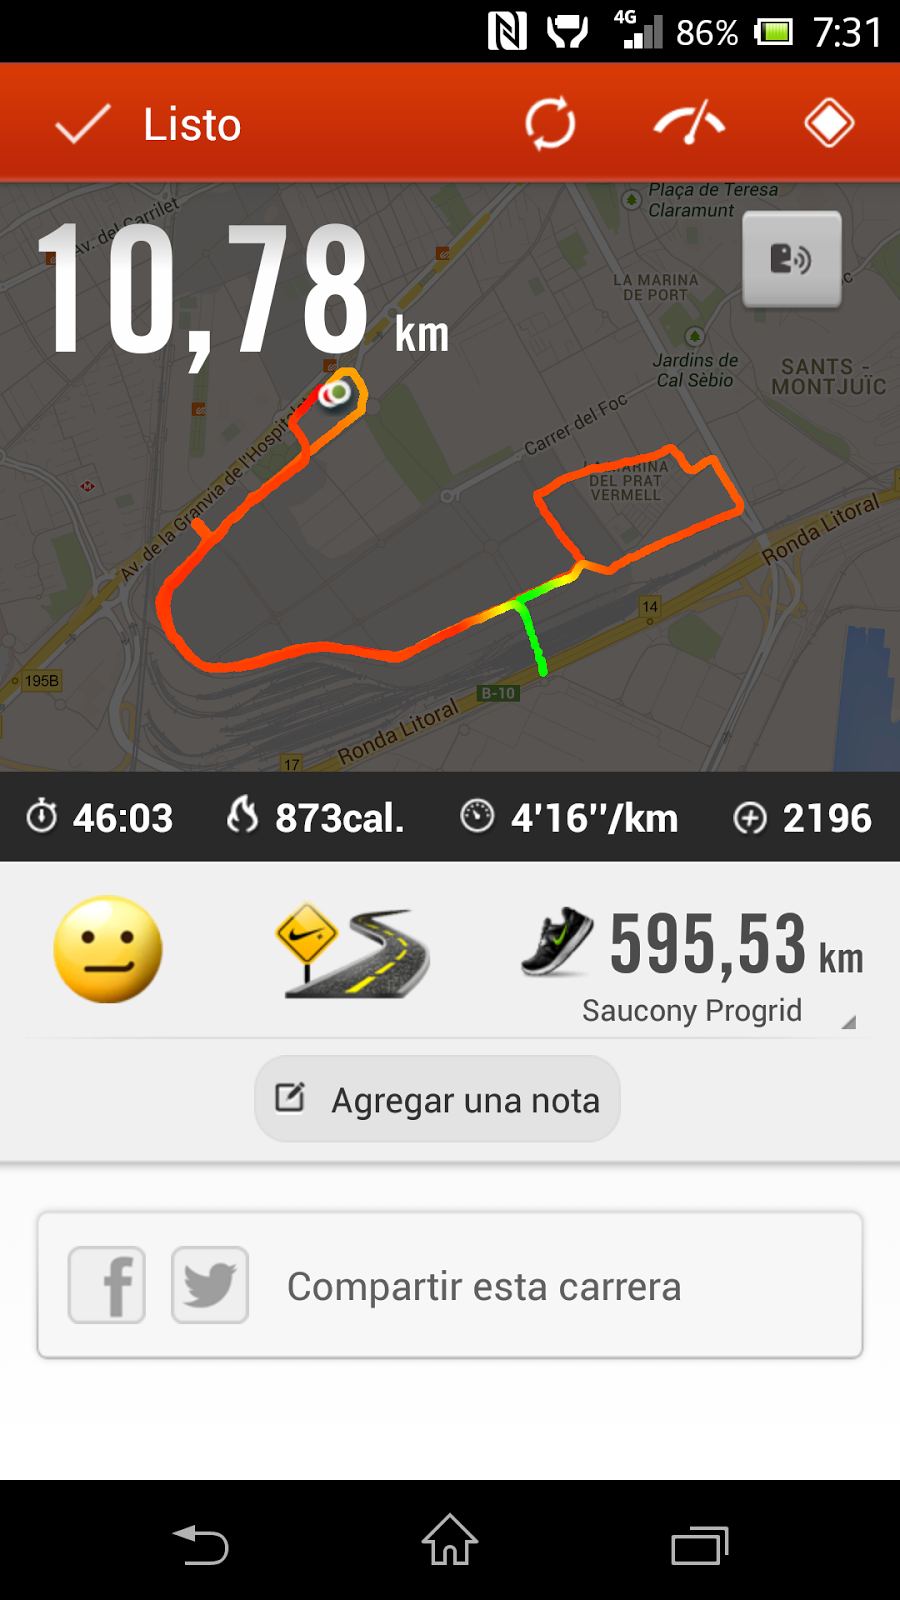 http://nikeplus.nike.com/plus/activity/running/axe75/detail/5263000000009603099120047210347328321570